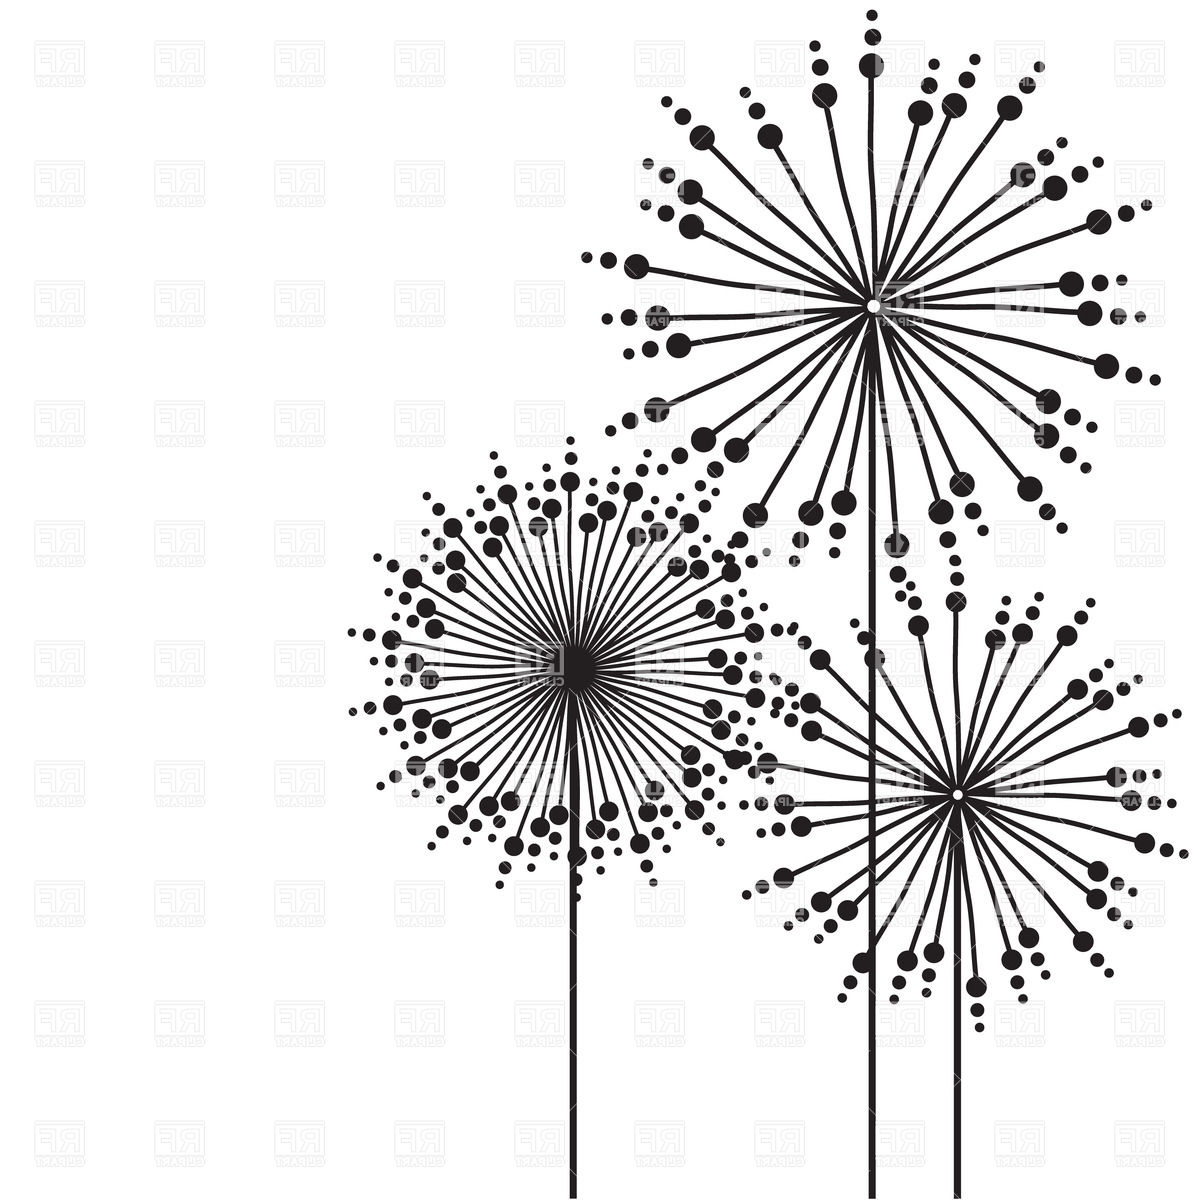 1200x1200 Drawings Of Abstract Flowers Simple Abstract Flower Drawings